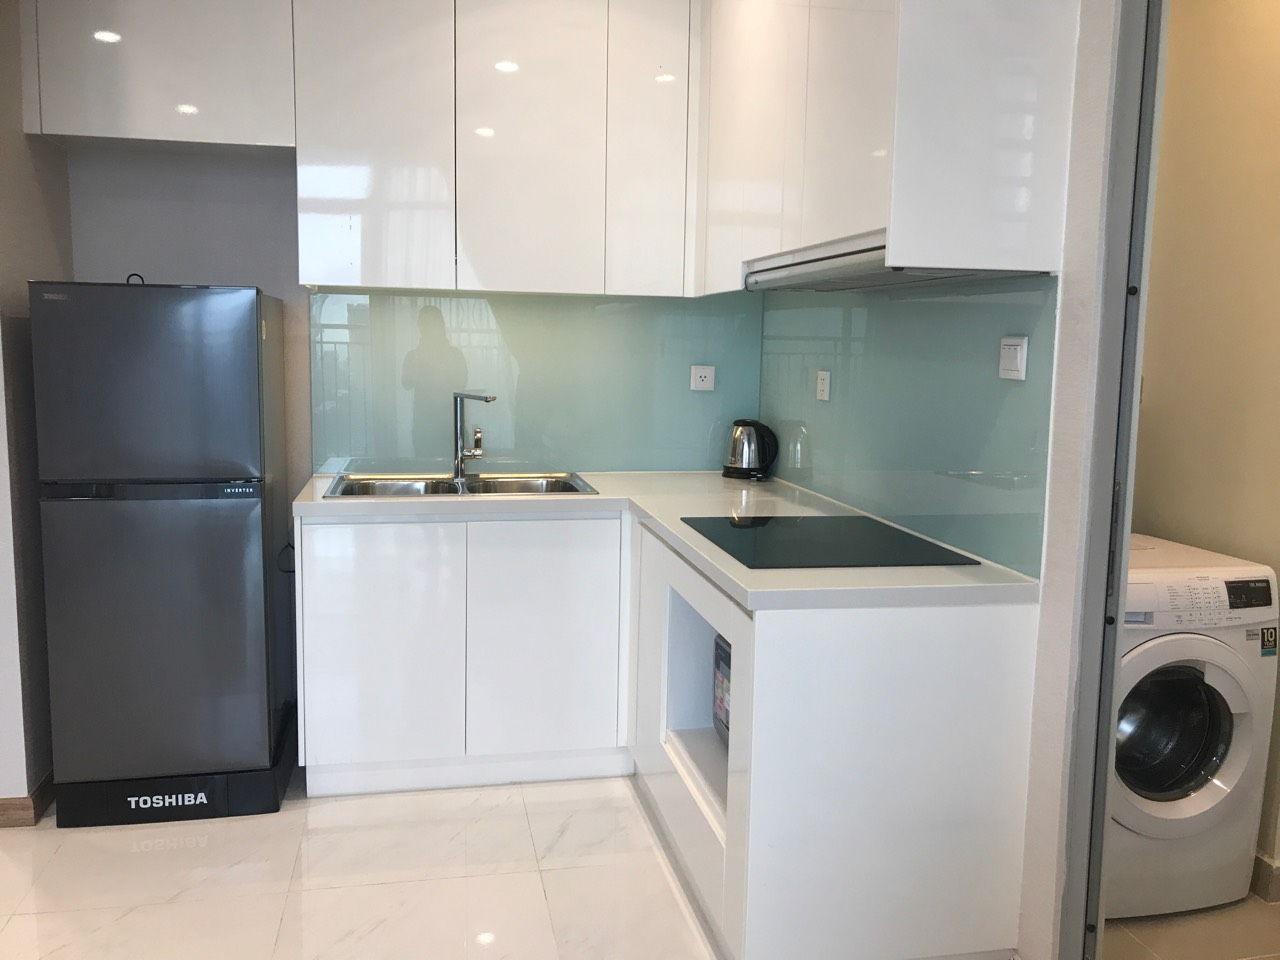 vinhomes central park apartment for rent in binh thanh district hcmc BT105L4410 (6)